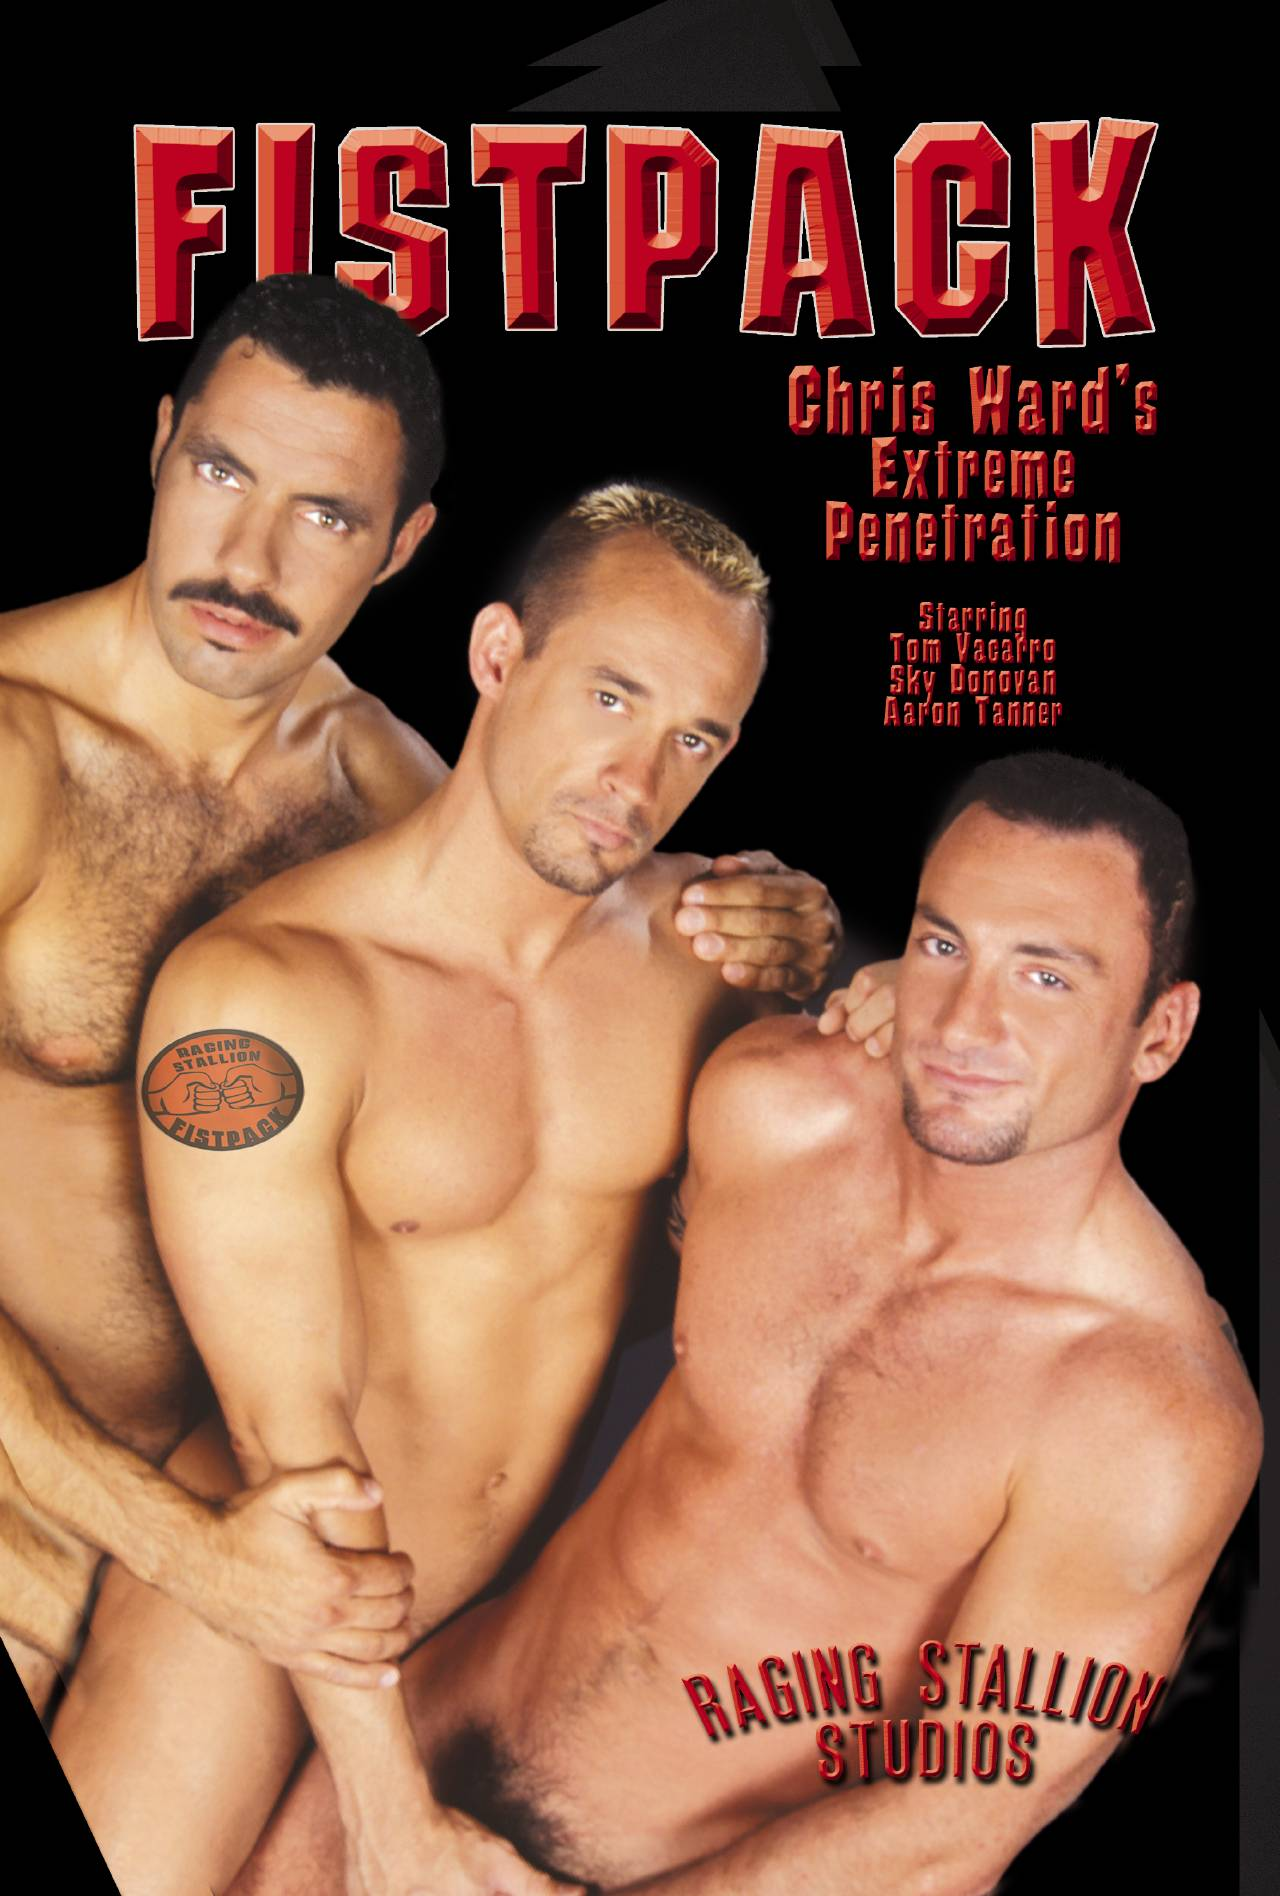 Fistpack 01 Chris Wards Extreme Penetration Front Cover